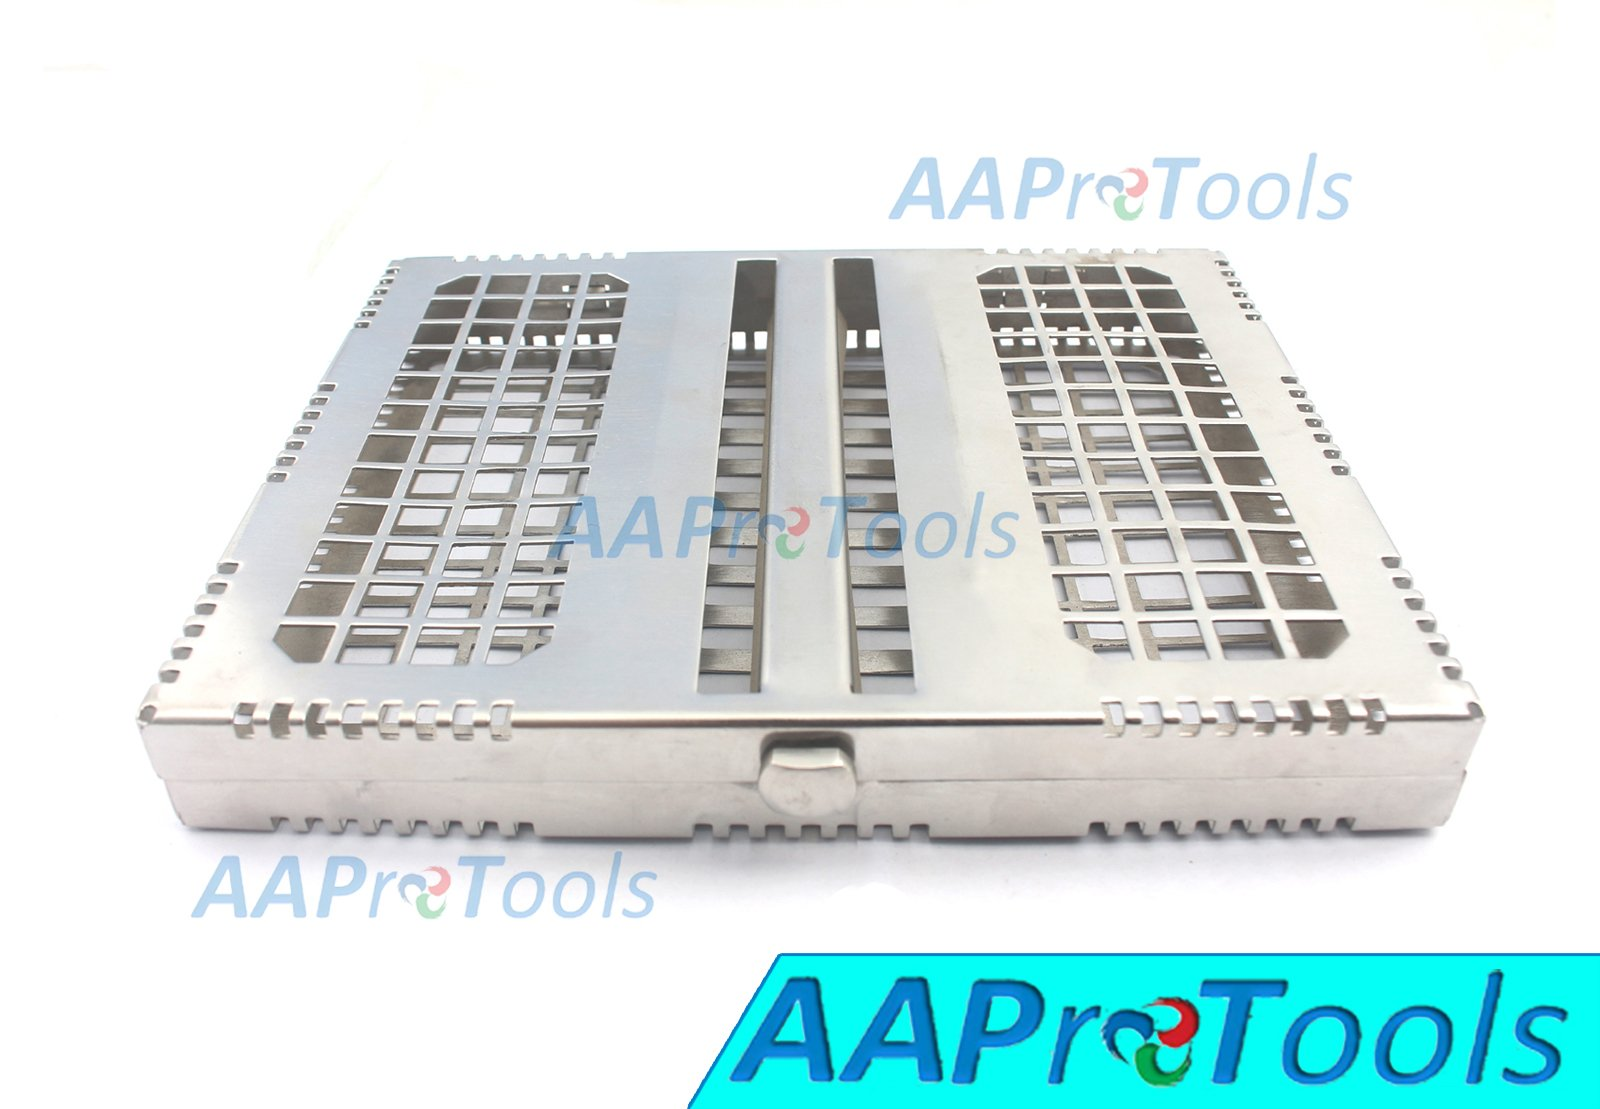 AAPROTOOLS DENTAL STERILIZATION CASSETTE RACK TRAY DISINFECTION BOX FOR 10PCS INSTRUMENTS A+ QUALITY